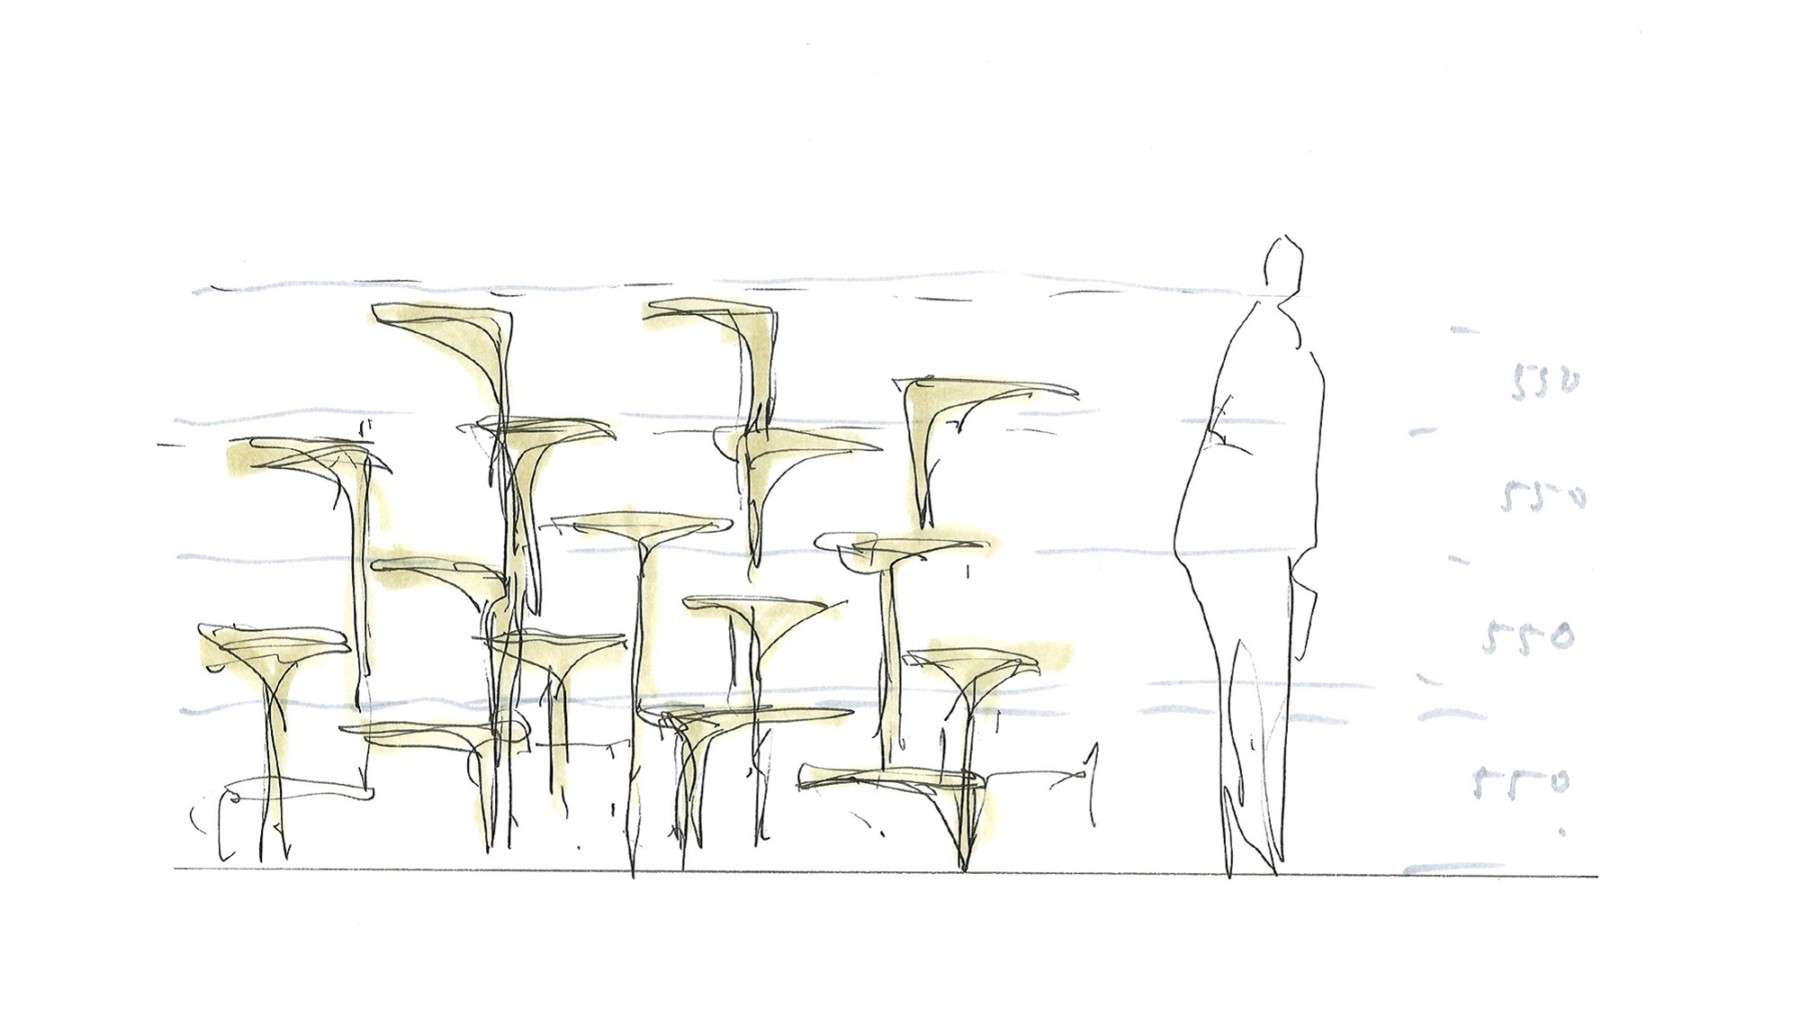 Jamie-Fobert-Architects-Retail-Interiors-Kurt-Geiger-Selfridges-Design-Sketch-Development-3